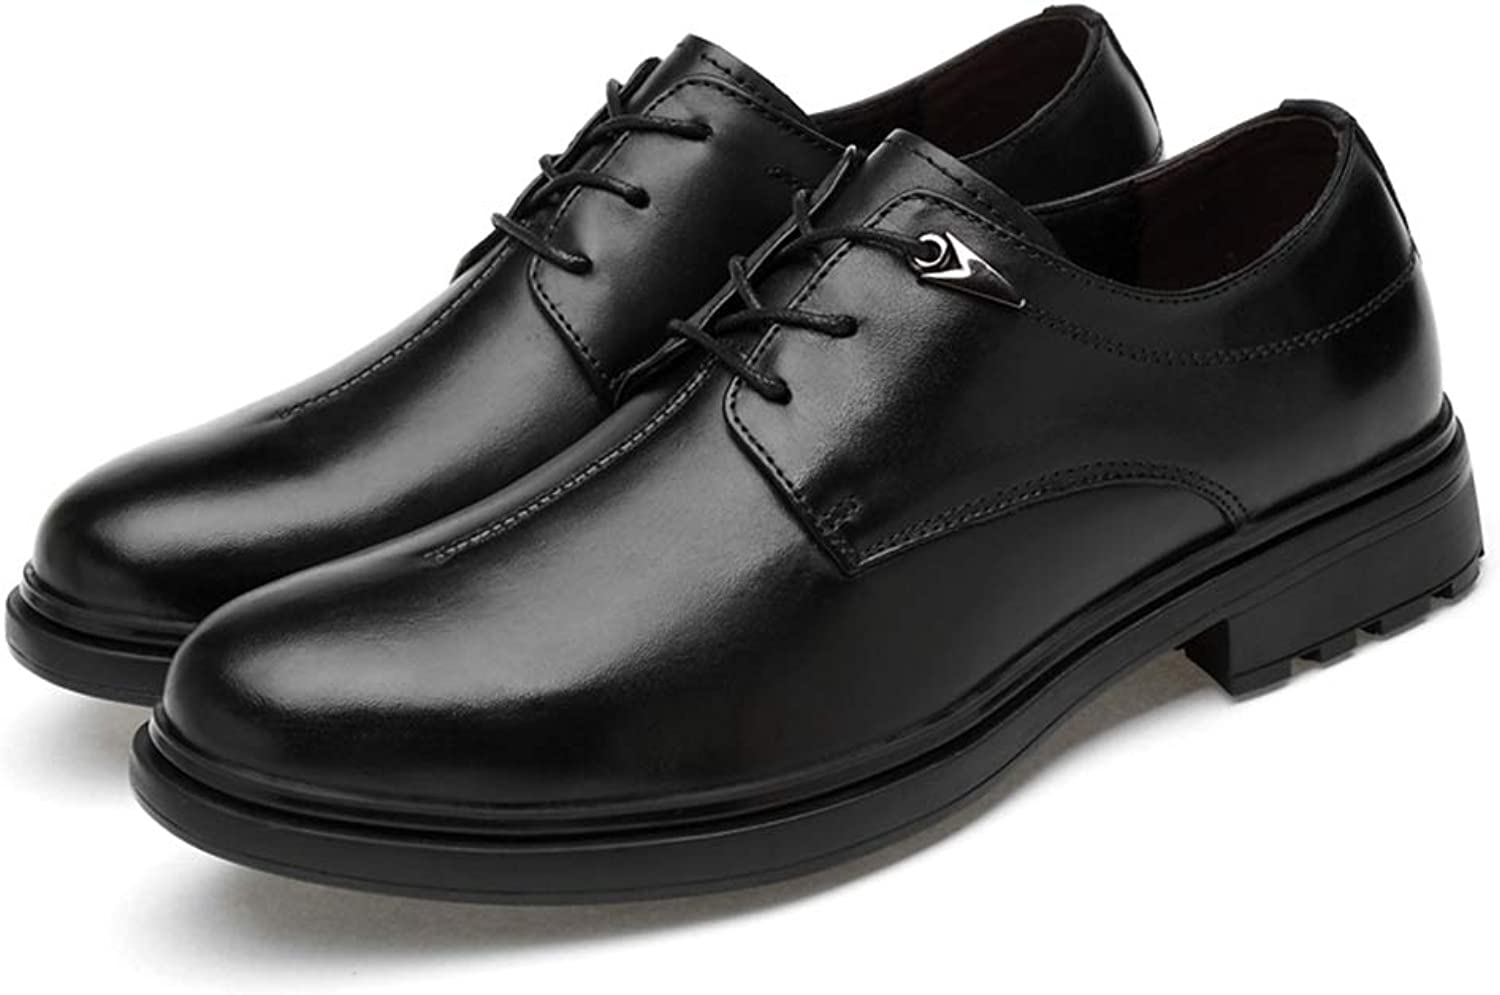 Men's British Style with Low Top Formal Fashion Leisure Oxford Casual Simpleshoes